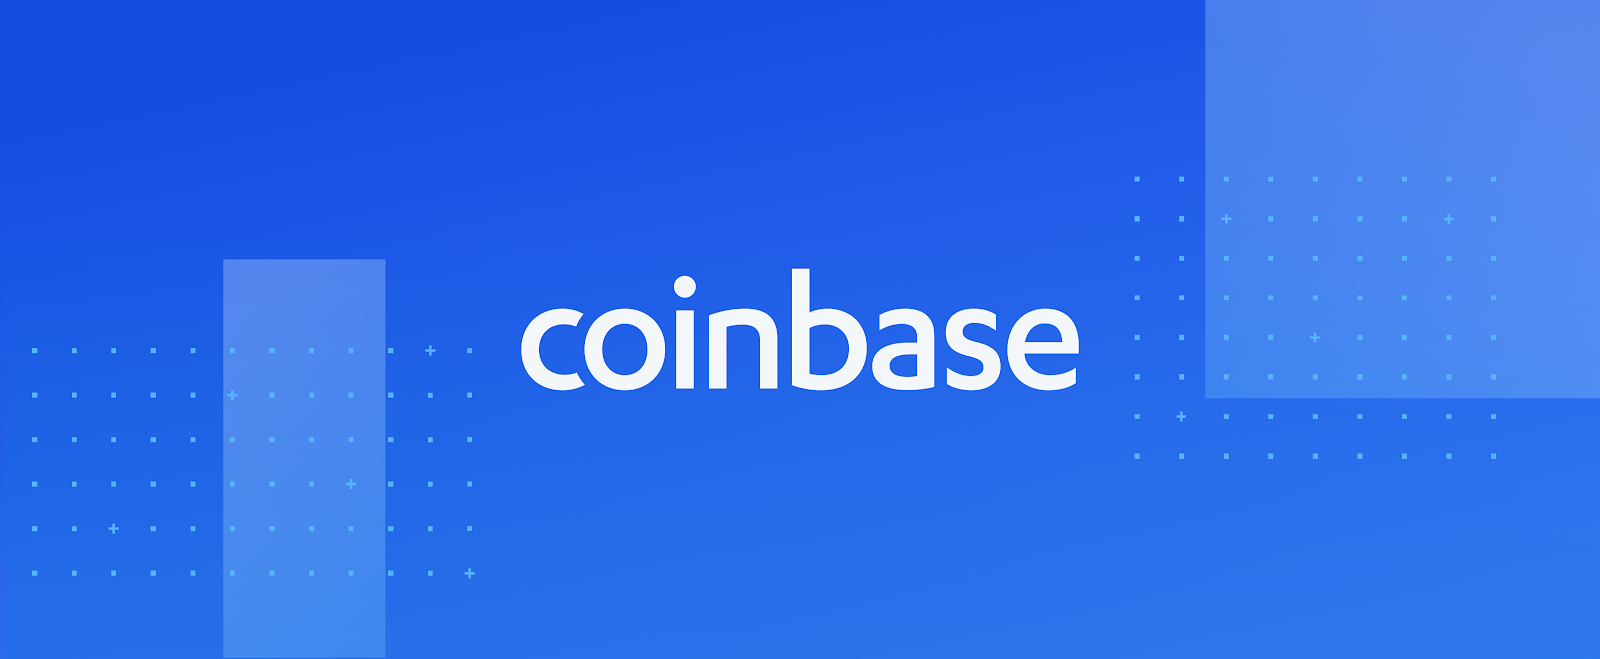 What to Expect During the Bitcoin Cash Hard Fork – The Coinbase Blog b5c378008d4f